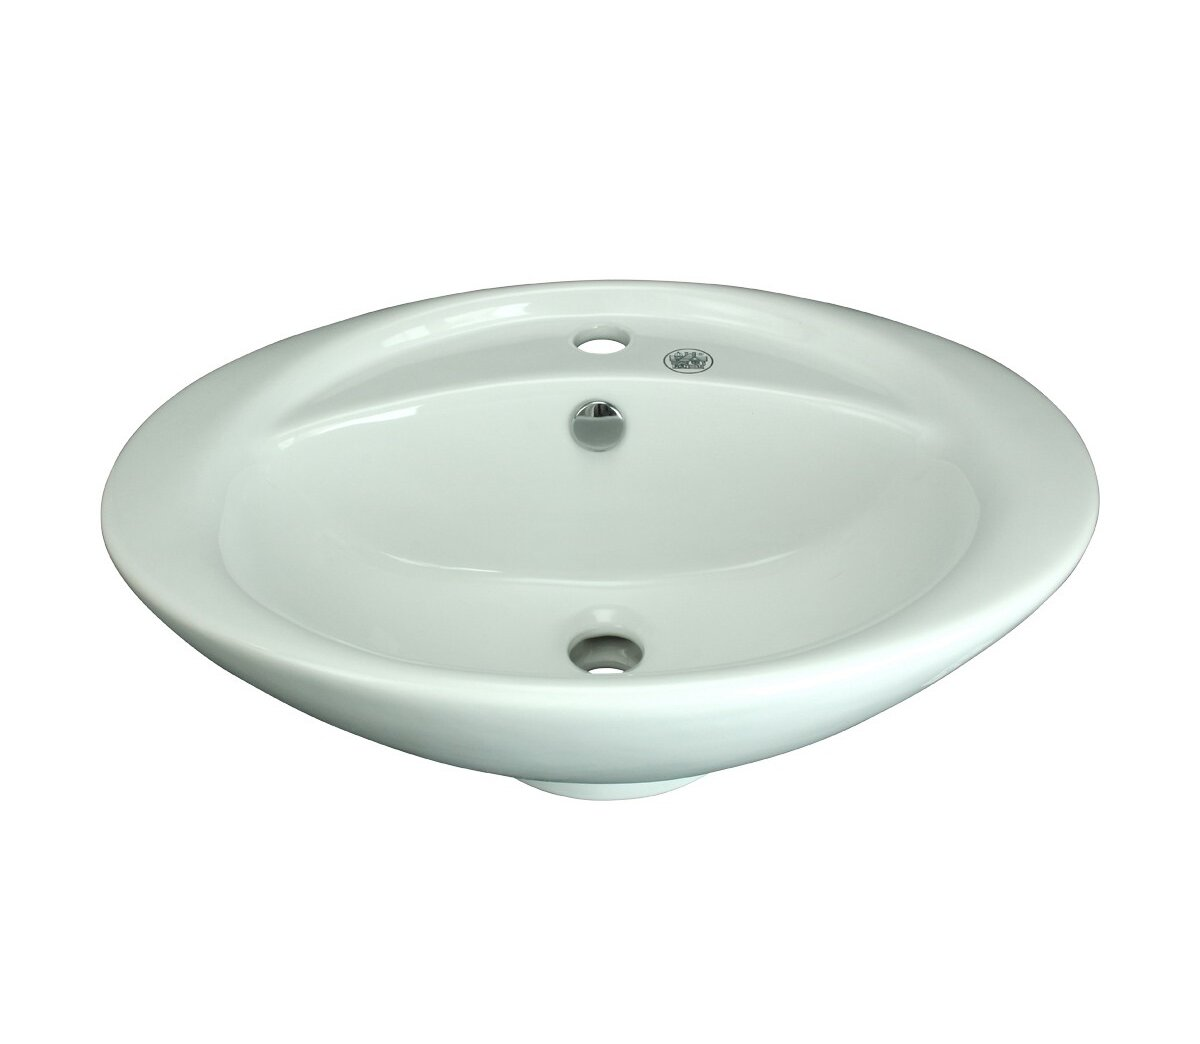 Dolphin Vessel Sink DRAIN INCLUDED Blue Tempered Glass Easy Clean And Countertop Install Stain Proof Authentic Renovators Supply IGC 172-2005 CSA B45.0-02 CSA B45.11-04 Certified